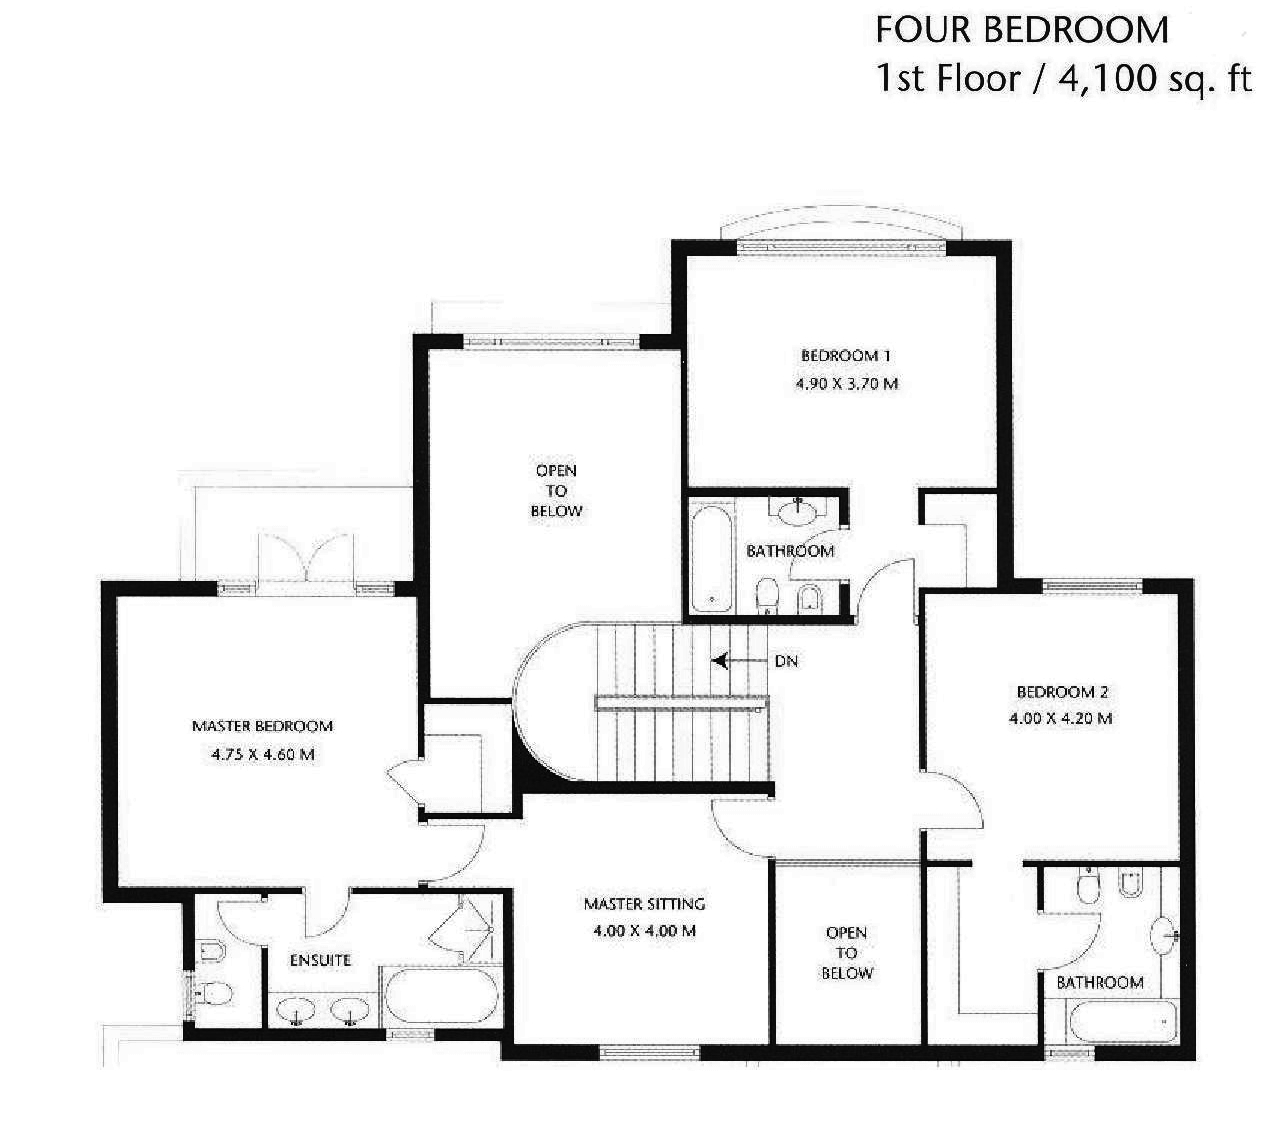 Canal cove floor plans palm jumeirah dubai for 4 bedroom townhouse floor plans